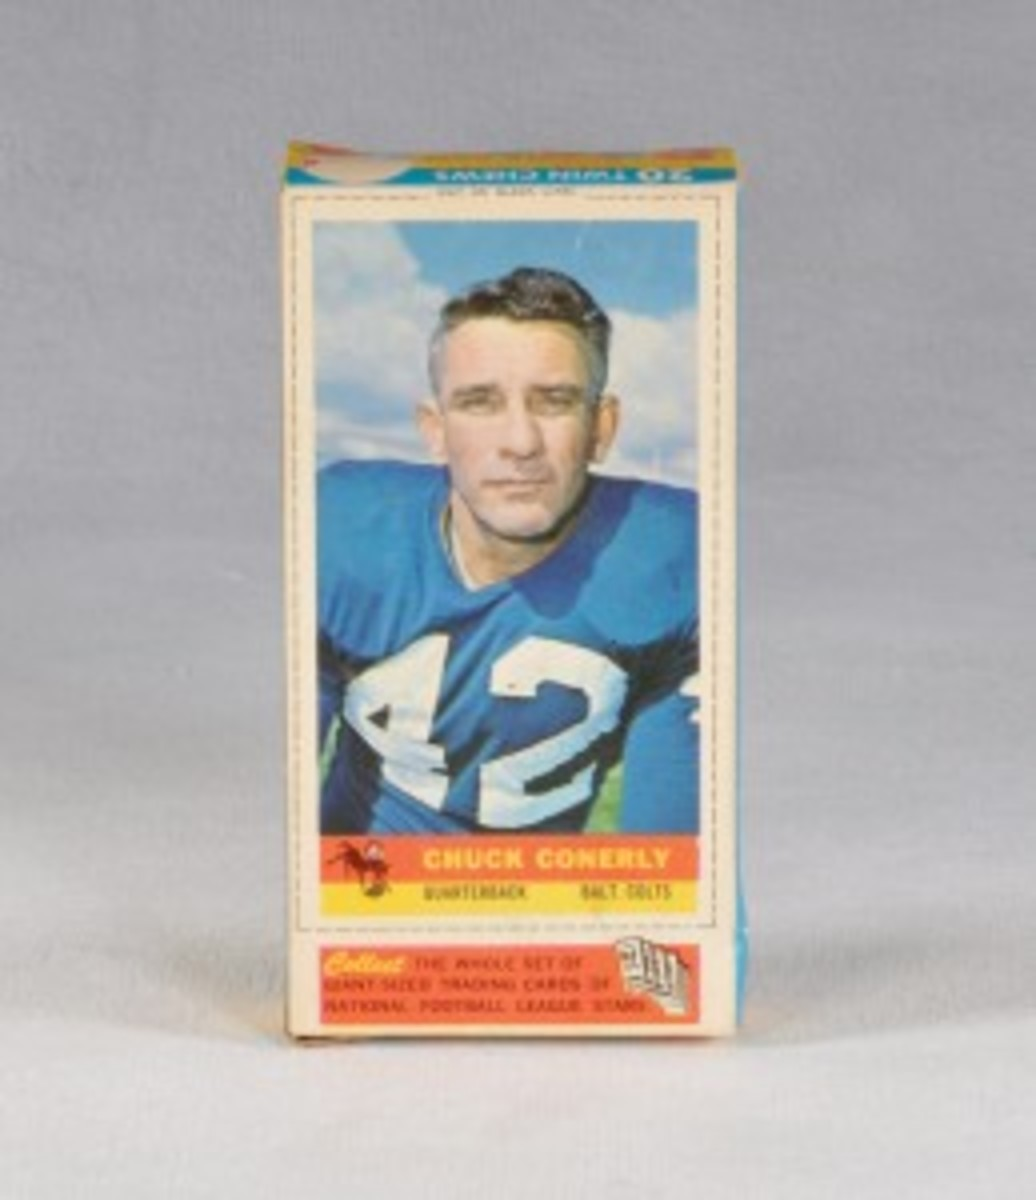 The Chuck Conerly card variation of him being named as a member of the Colts brings the 1959 Bazooka card set complete at 19 cards.